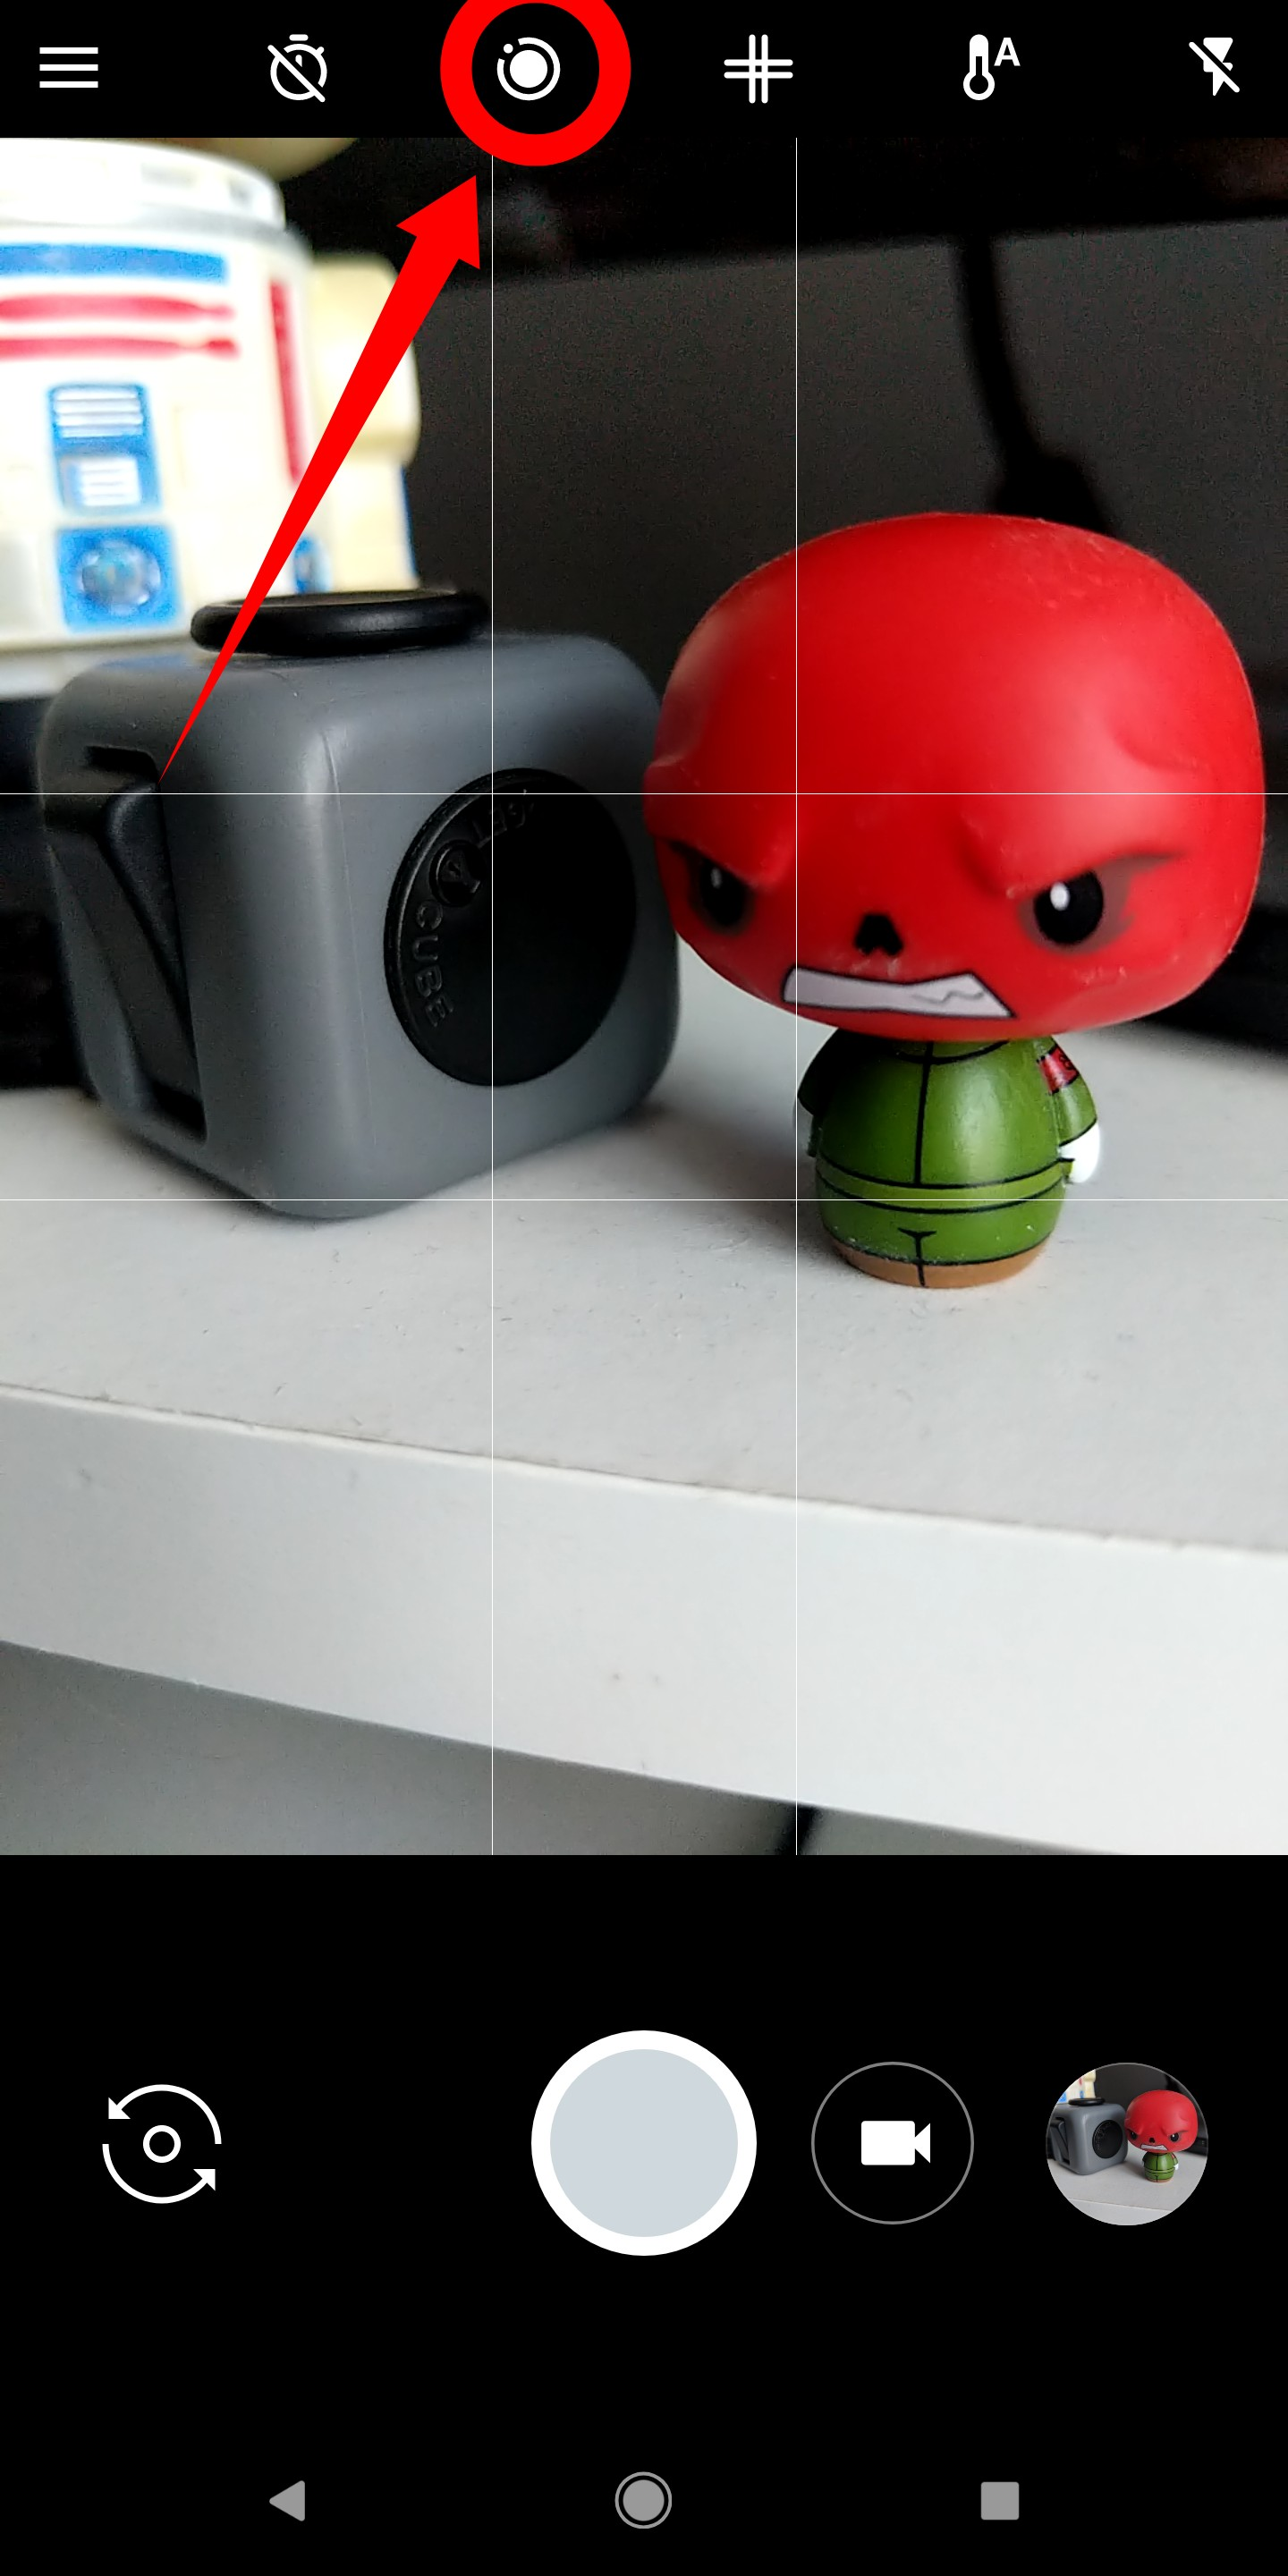 How to turn Motion Photos on or off in the camera app on the